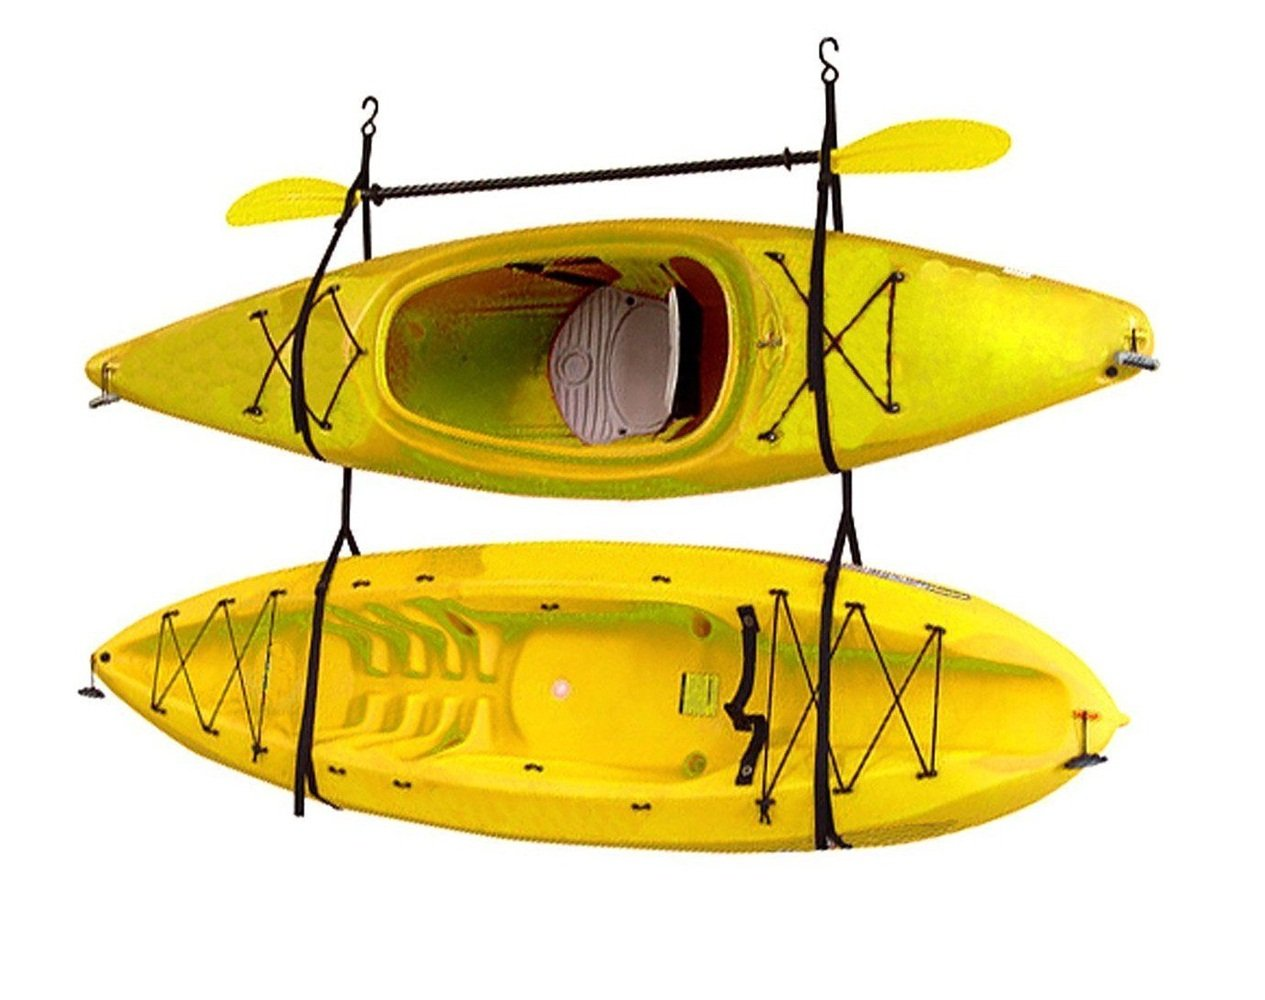 Kayak Strap Hang-2 Gear Up Deluxe Storage Black by Canoe (Image #1)